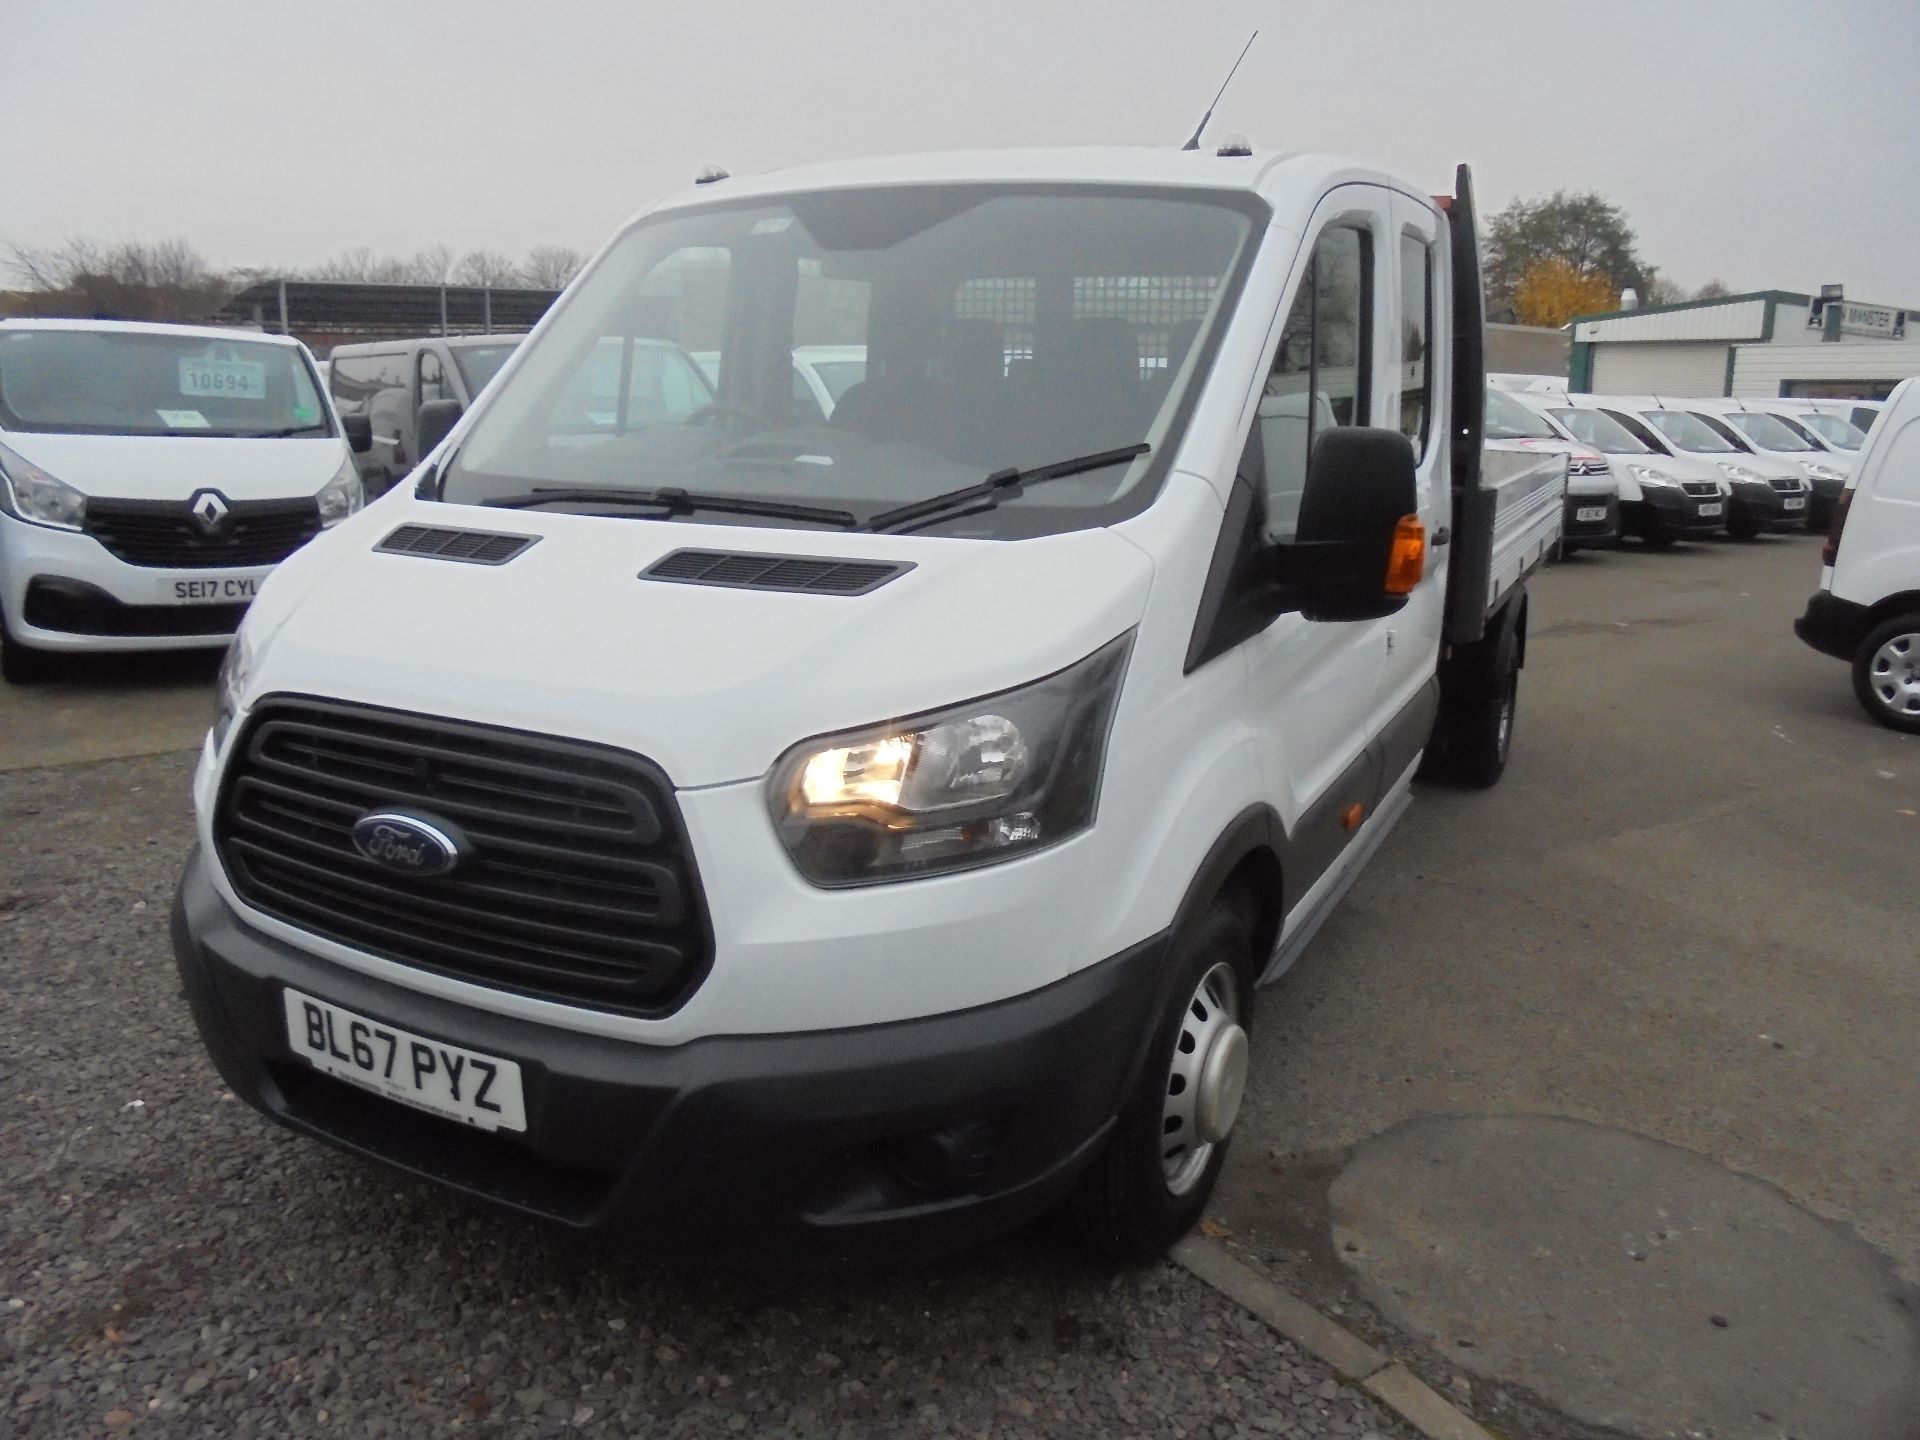 2017 Ford Transit 350 L3 DOUBLE CAB TIPPER 130PS EURO 5 (BL67PYZ) Image 7